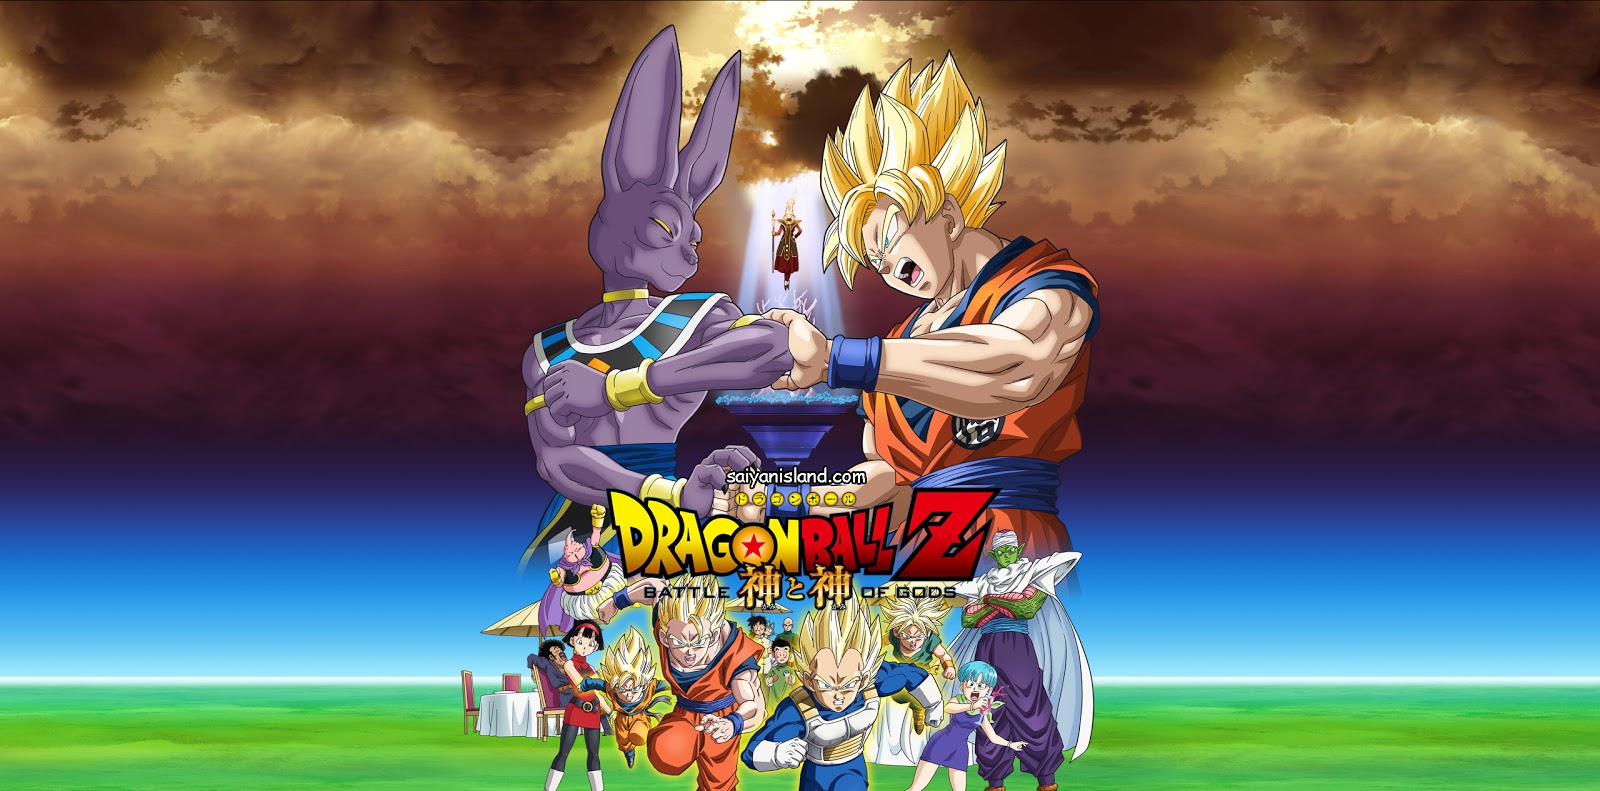 http://4.bp.blogspot.com/-1dwv5RuGAaA/USRlOcJQRmI/AAAAAAAADAk/XXNbcjbeaB4/s1600/Dragon-Ball-Z-Battle-of-Gods-Wallpaper.jpg